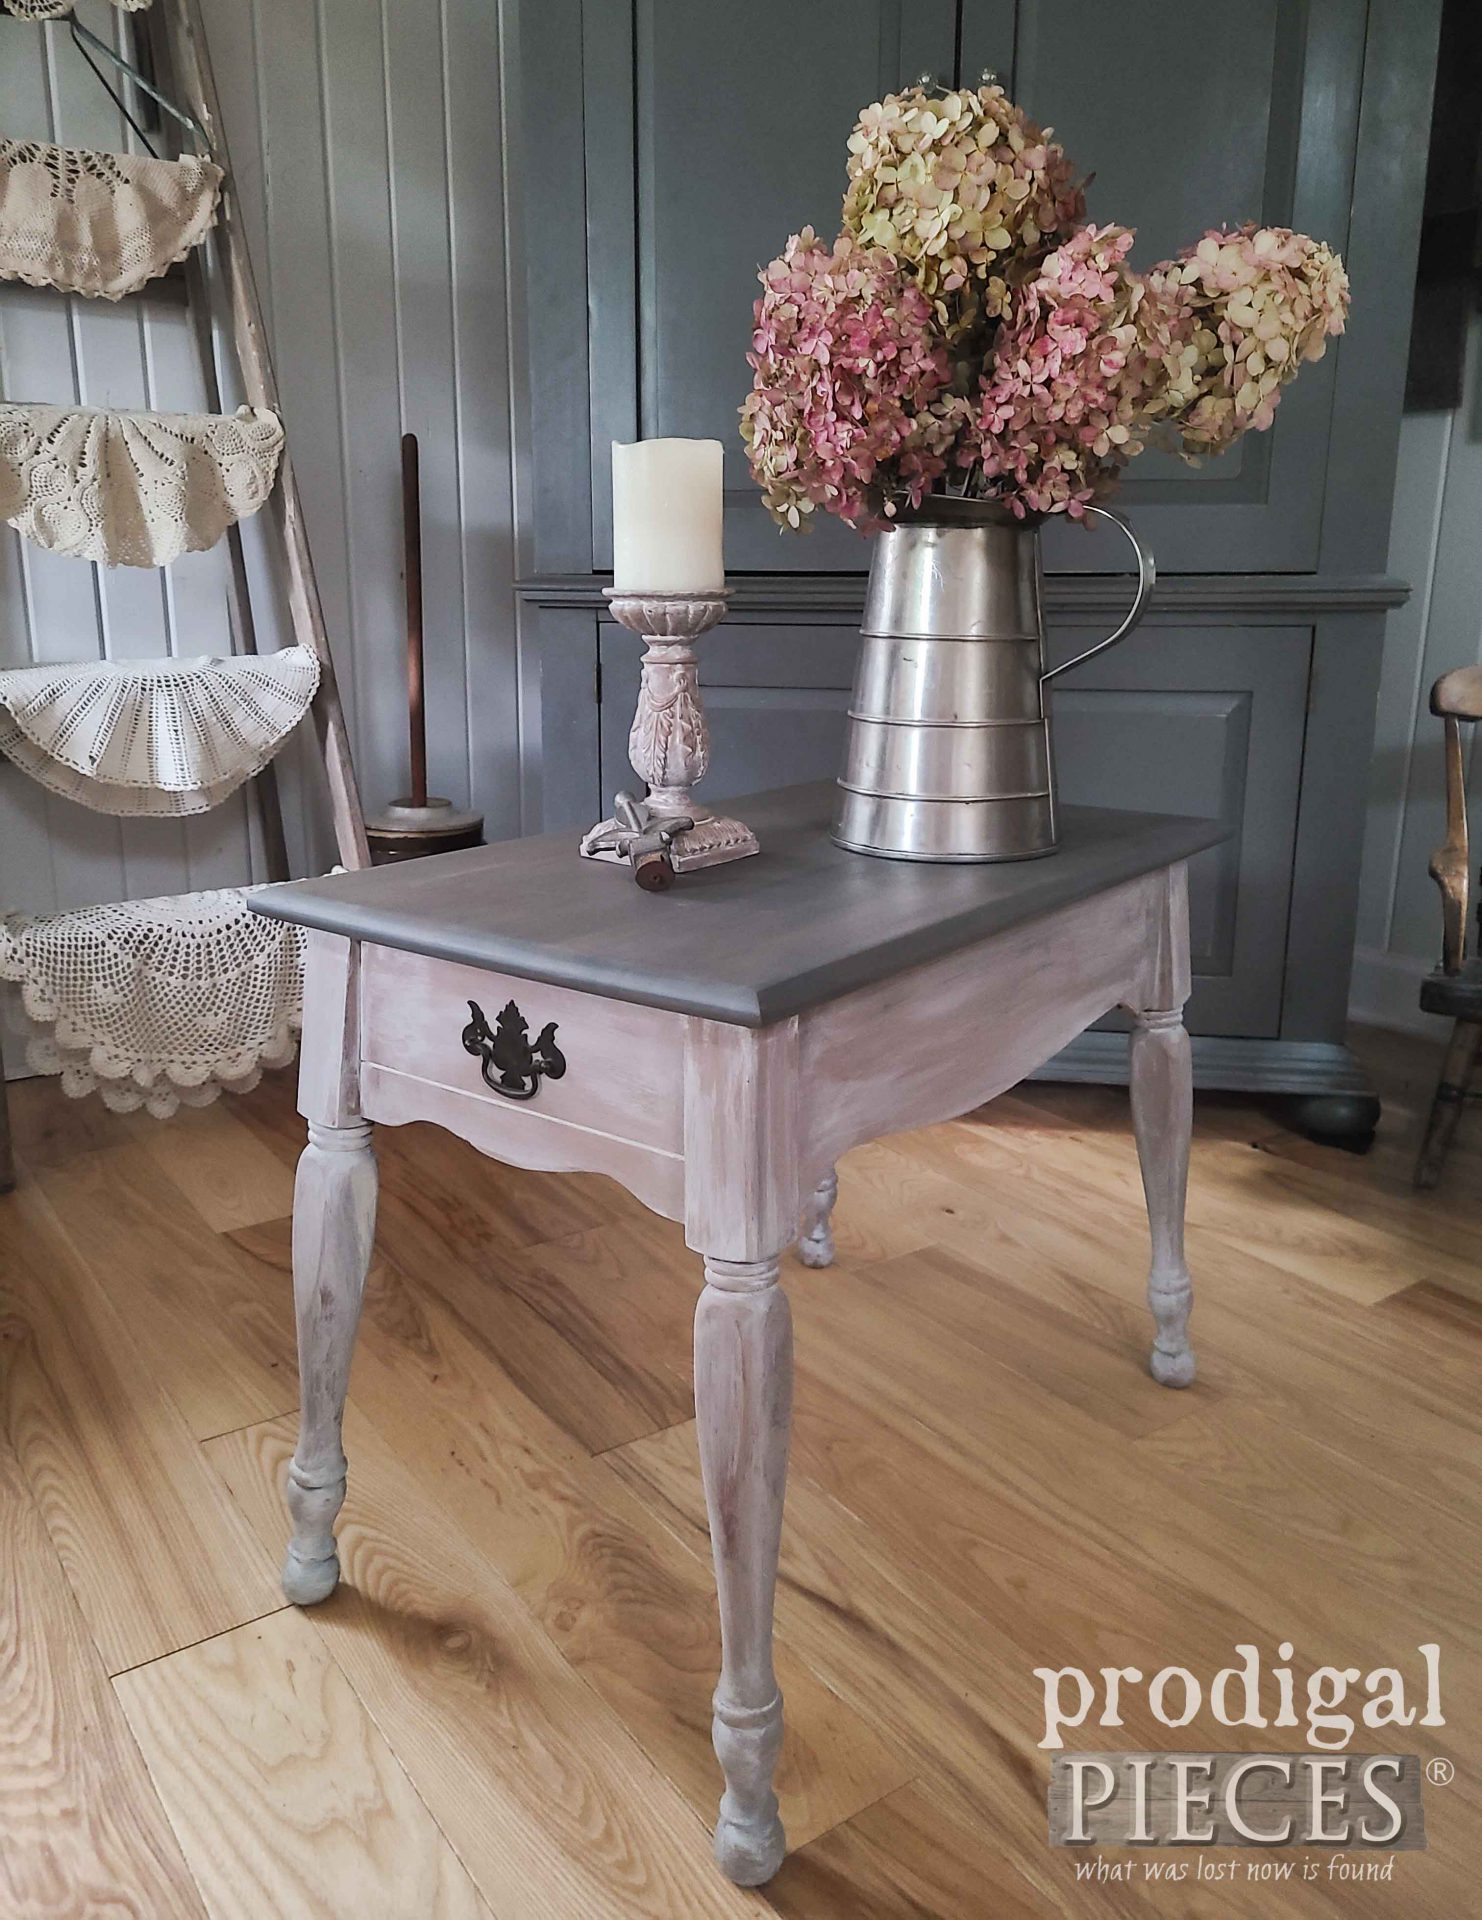 Small Vintage Farmhouse Table Makeover by Larissa of Prodigal Pieces | prodigalpieces.com #prodigalpieces #vintage #furniture #table #home